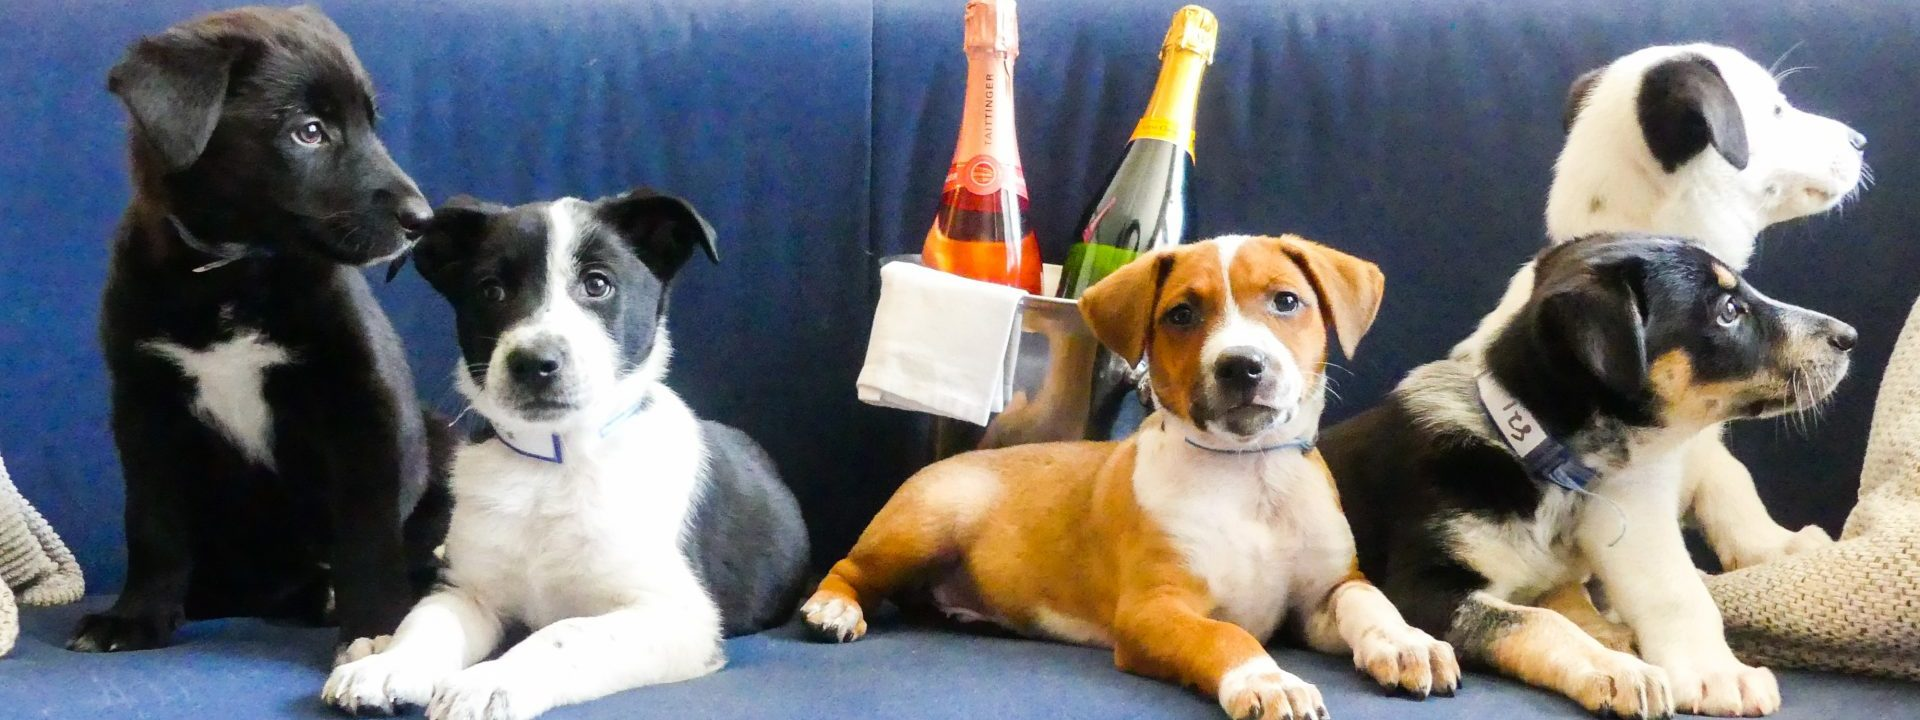 Paws for the cause with an in-room puppy party at Denver's Kimpton Monaco